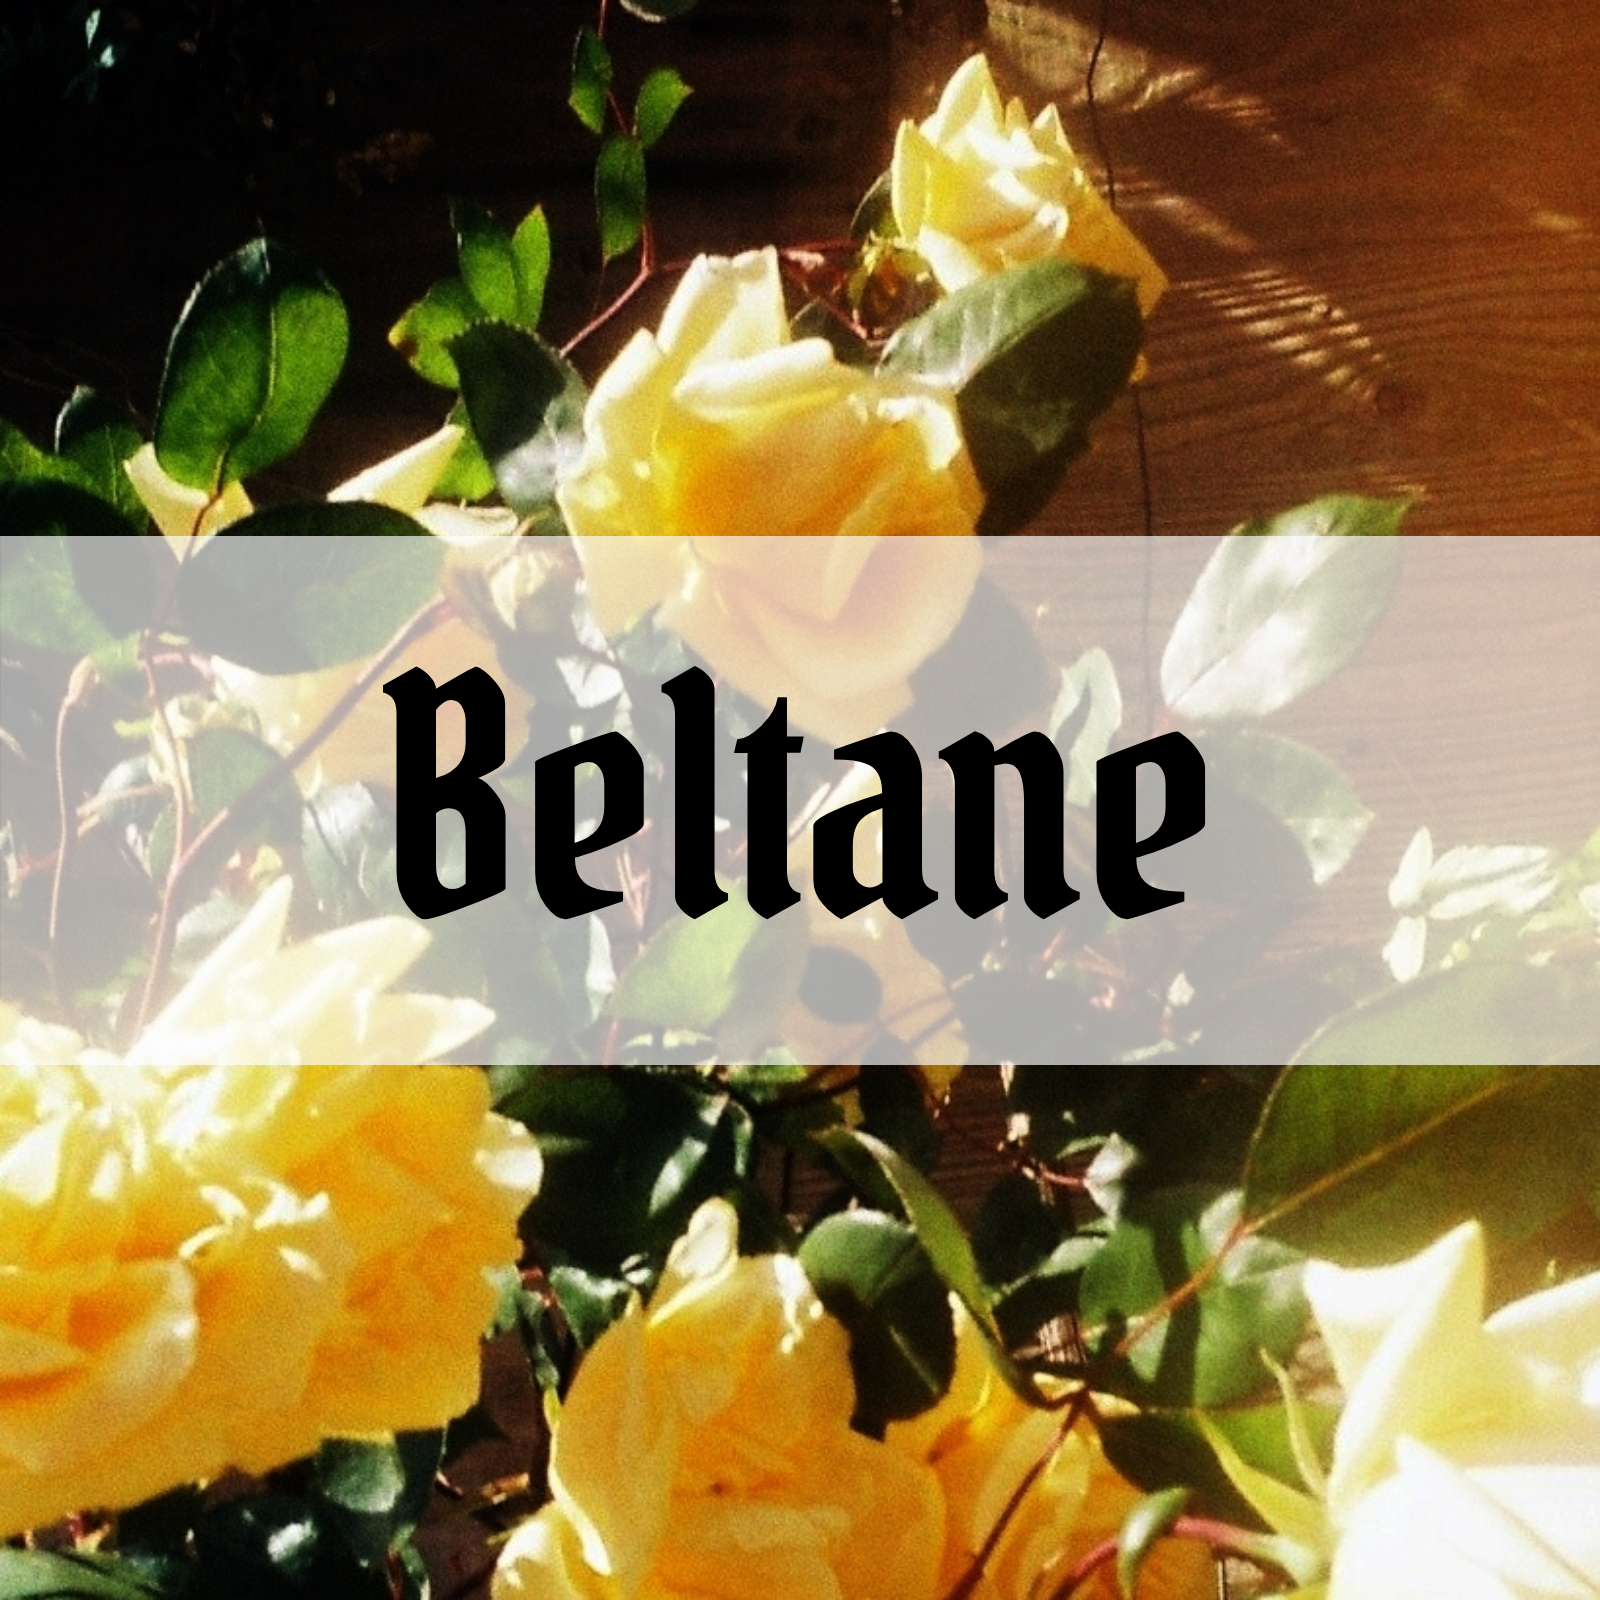 (2021) Beltane celebration – 9 simple activities for beginner witches